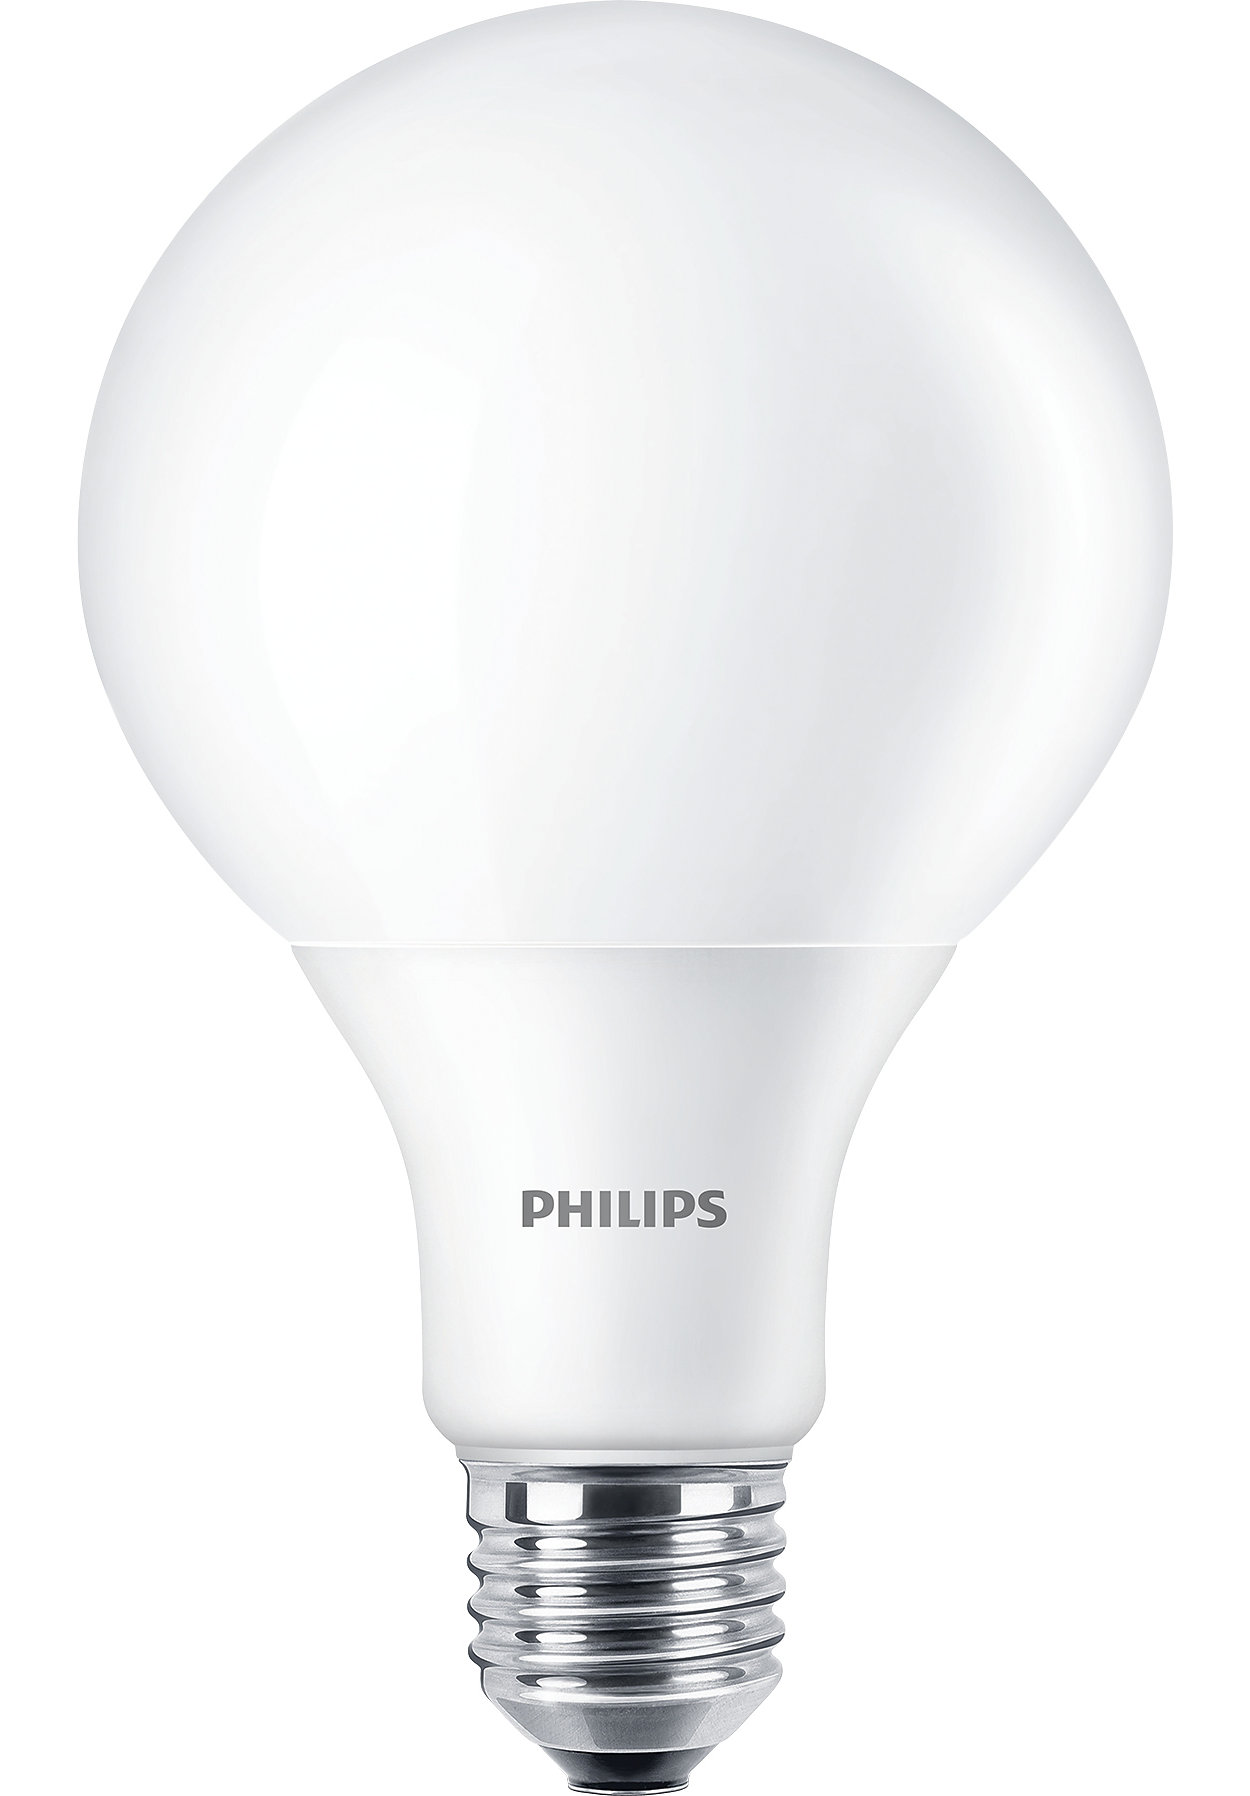 Led globe 100w e27 ww 230v g93 fr nd4 a shape led philips lighting attractive dimmable led alternative to popular incandescents led led globe 100w e27 parisarafo Gallery